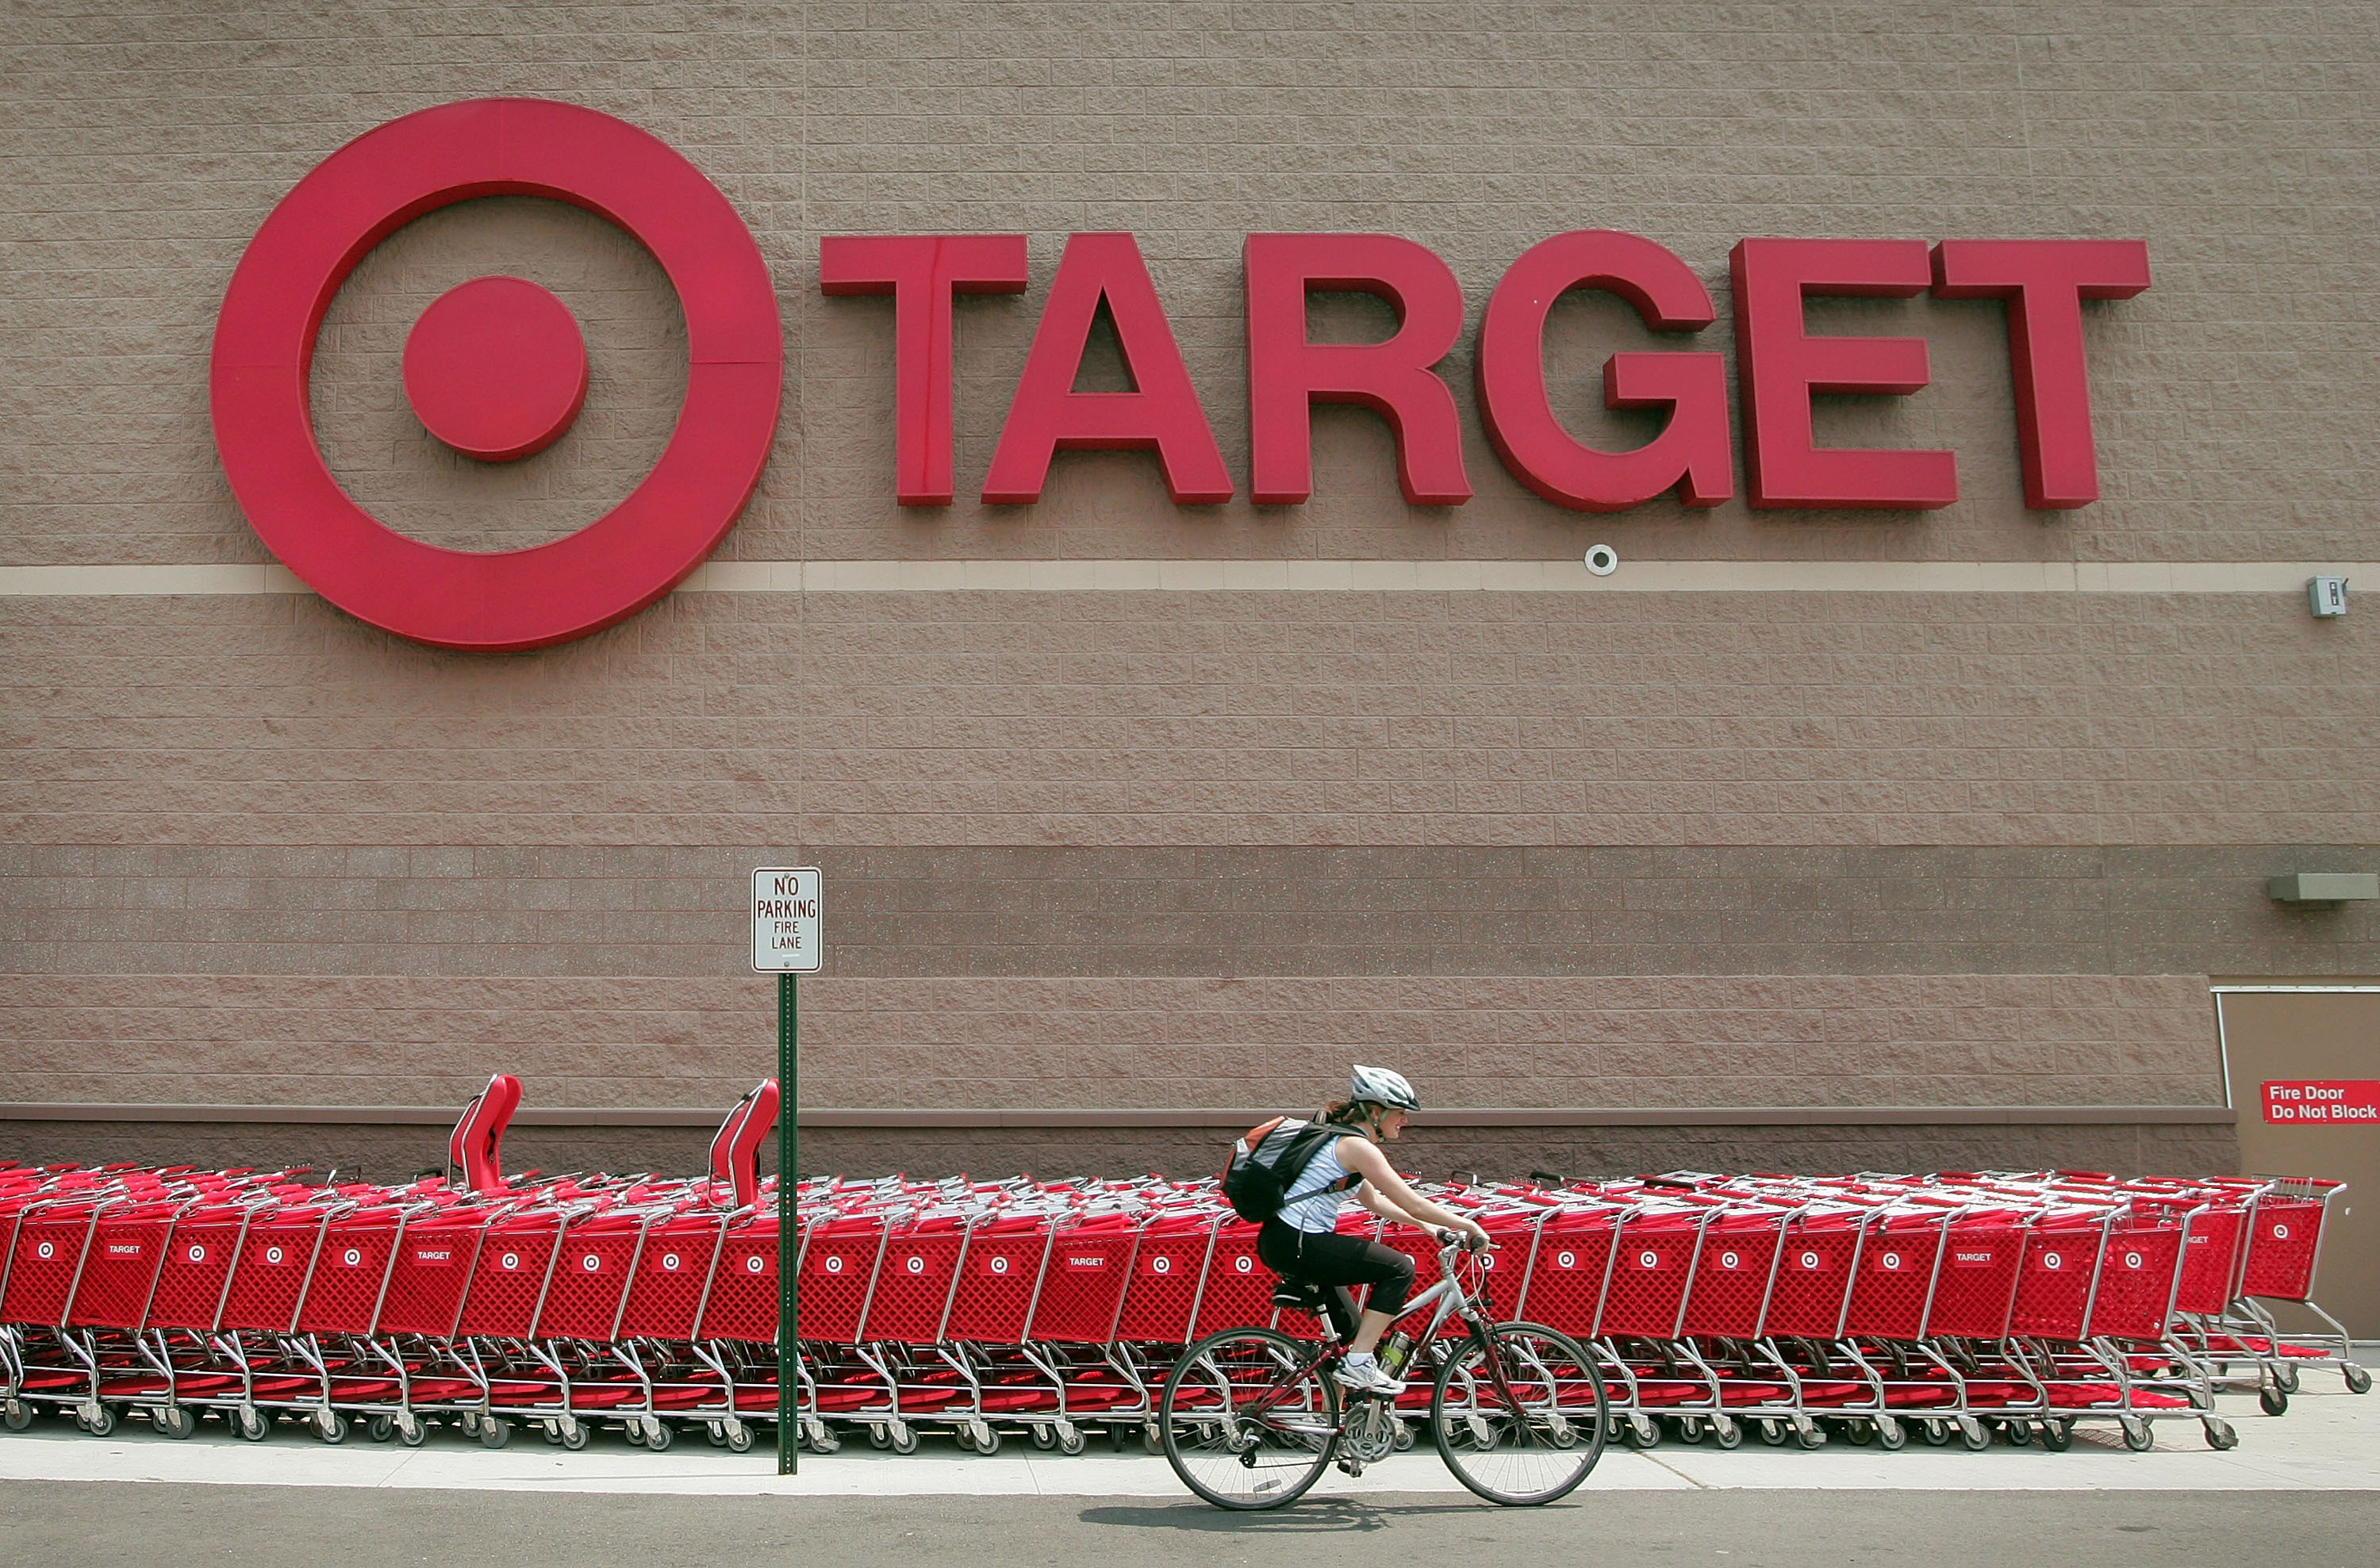 New Year's Day store hours 2017: What time is Target open?